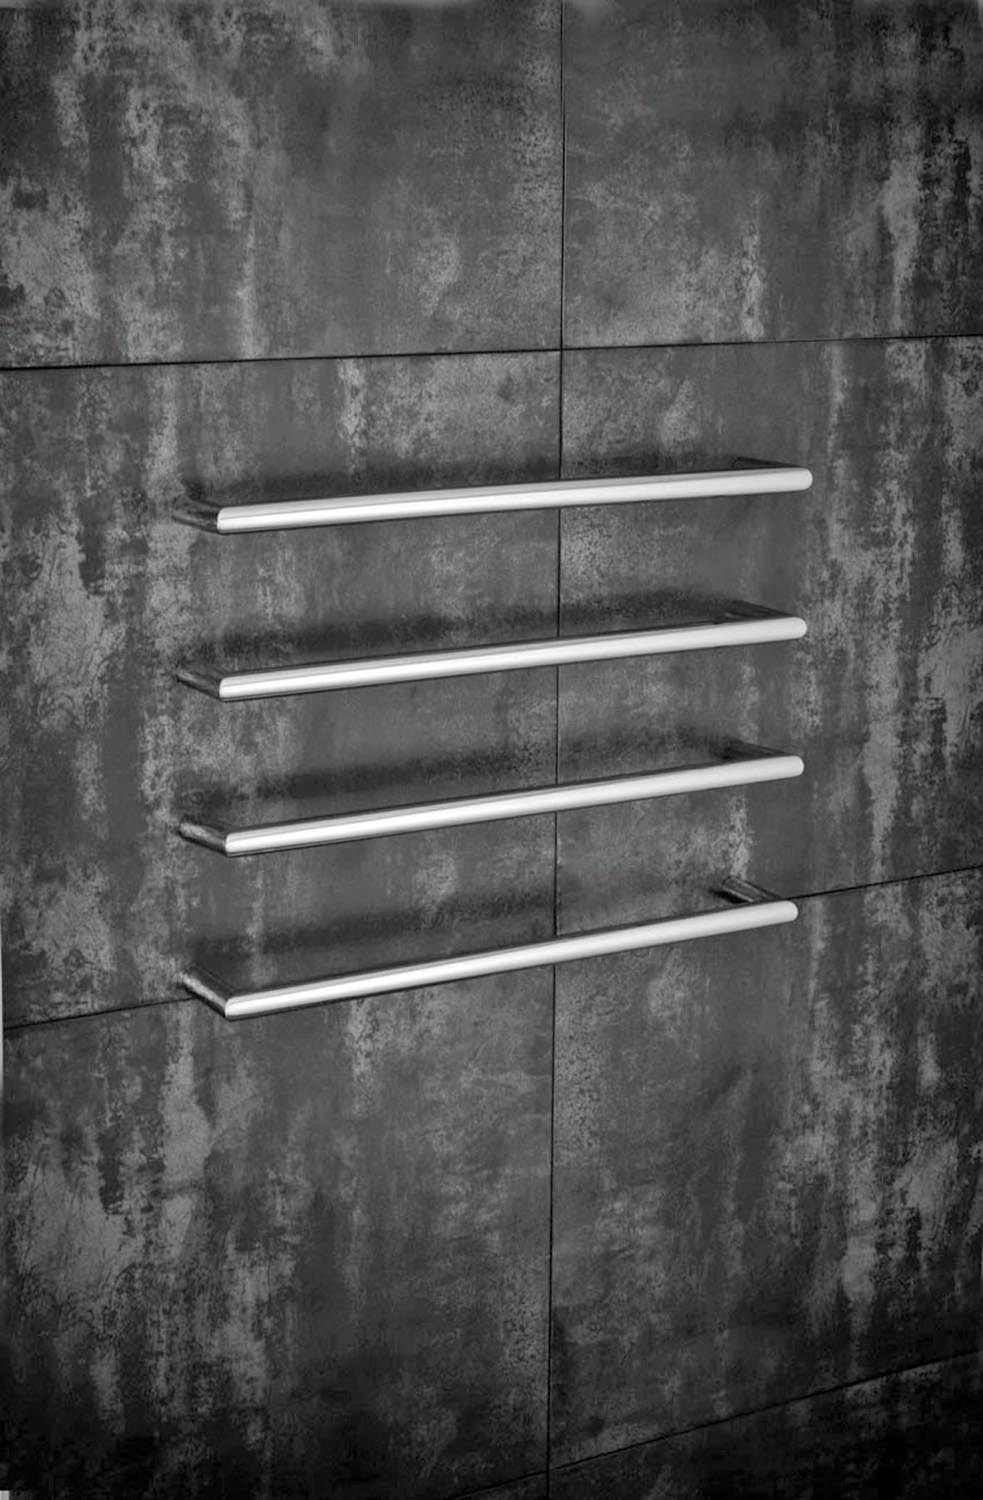 Avenirs heated towel ladders - a smart solution